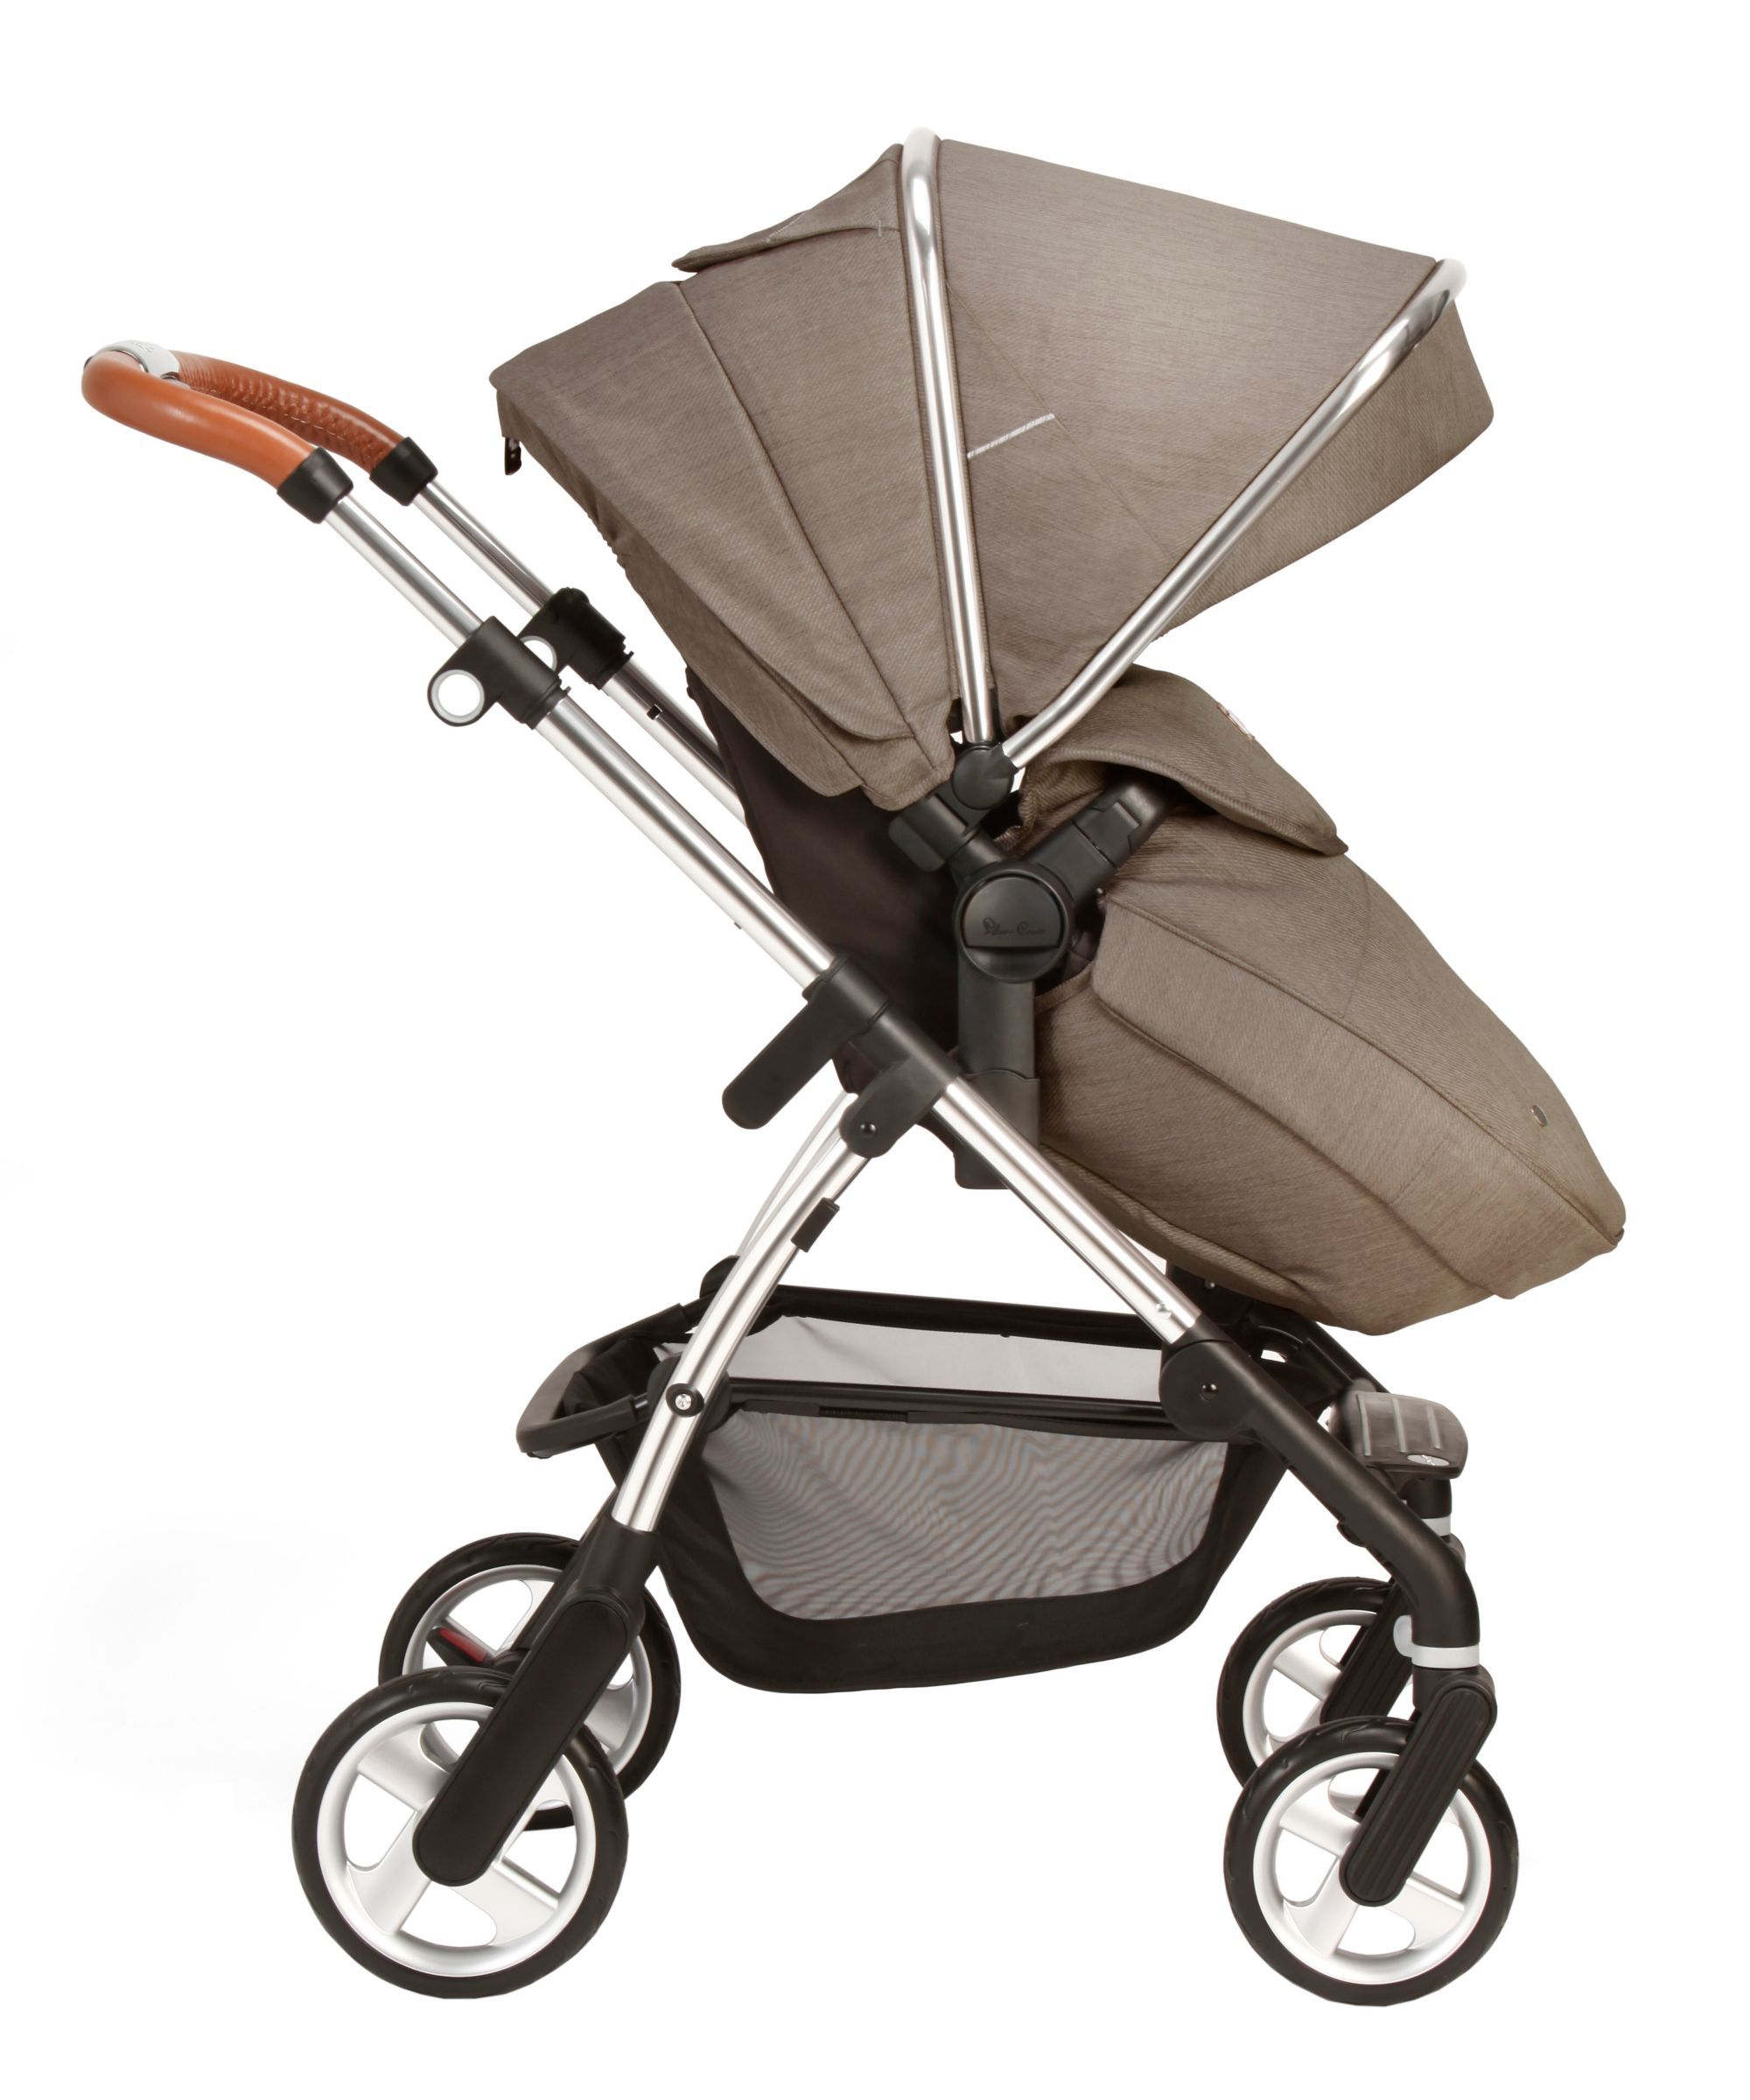 pramsandbuggies.com Prams and Buggies | Prams | Buggies ...